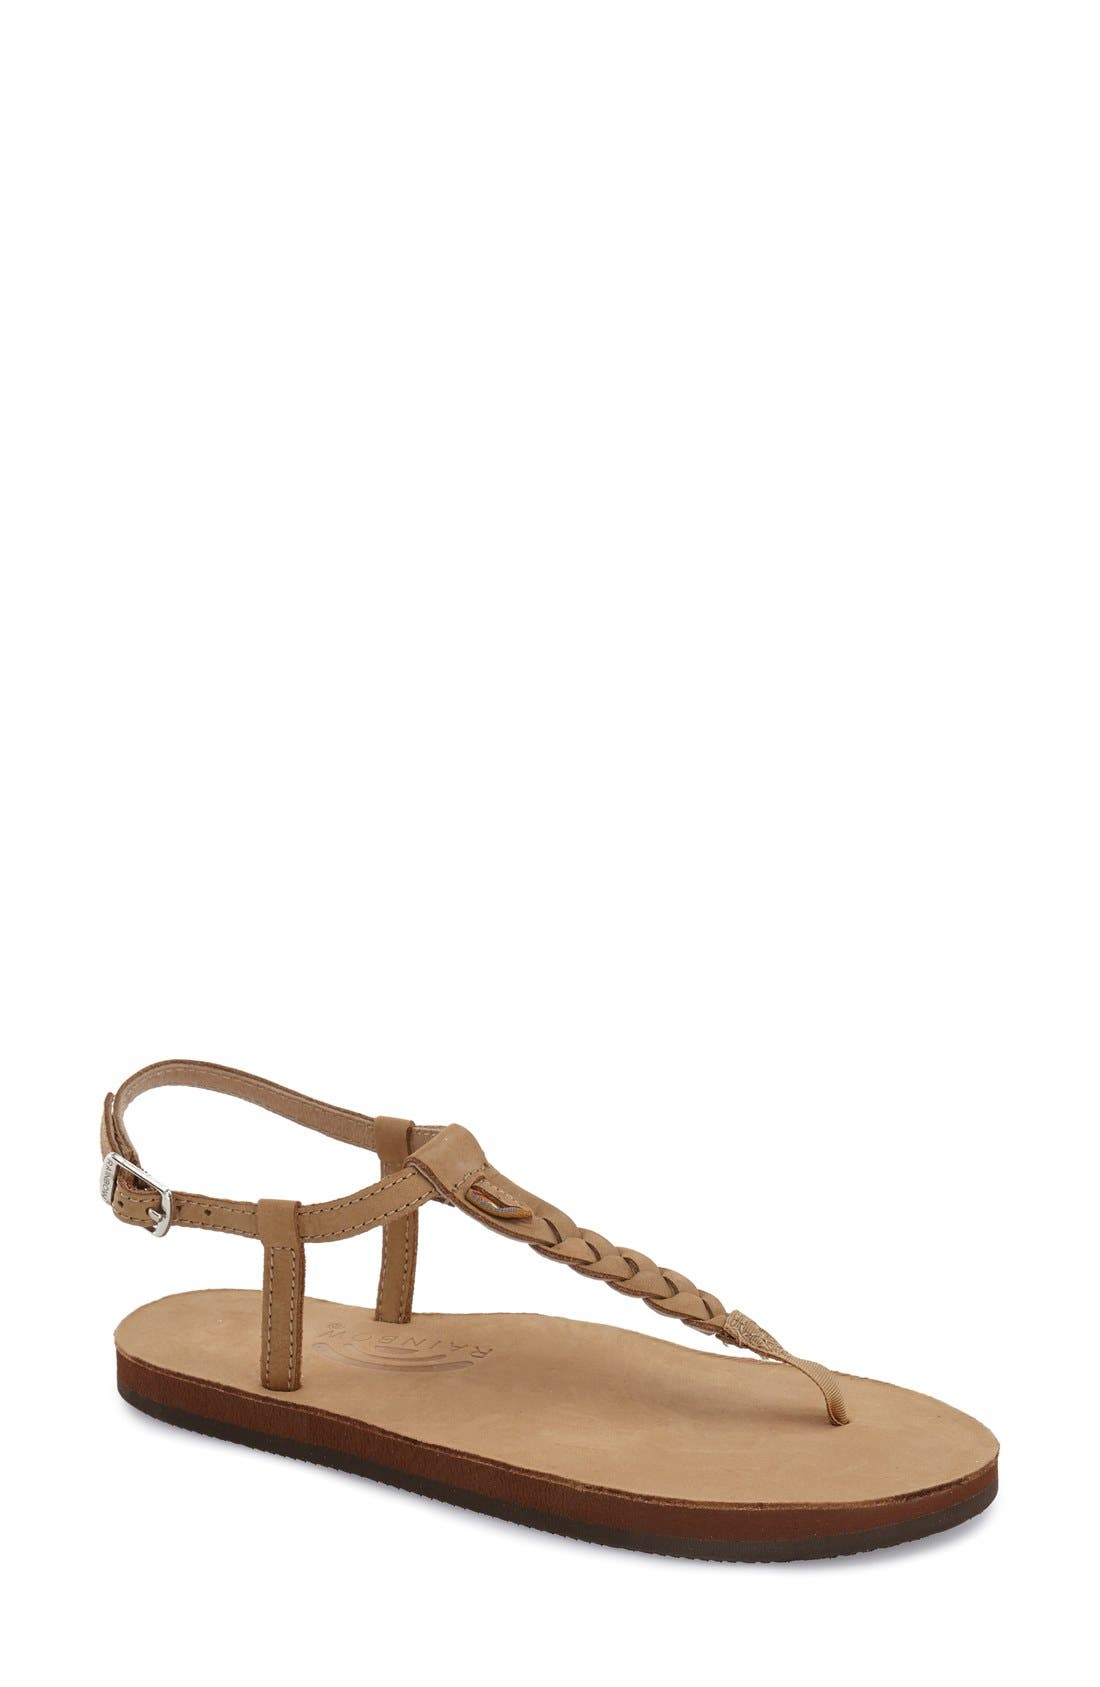 'T-Street' Braided T-Strap Sandal,                             Main thumbnail 2, color,